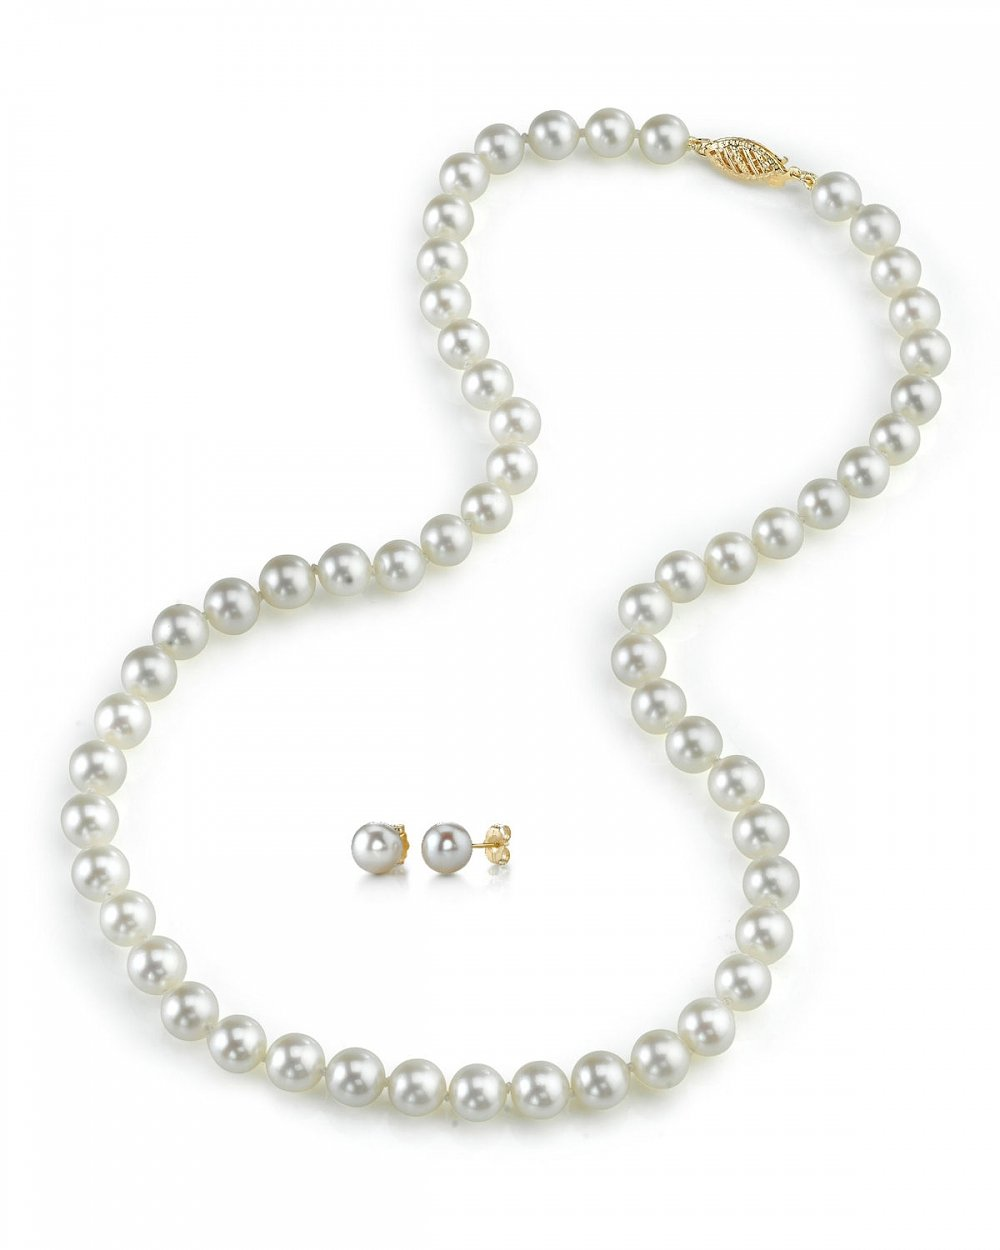 14K Gold 6.5-7.0mm Japanese Akoya White Cultured Pearl Necklace & Earrings Set, 18'' Length - AA+ Quality